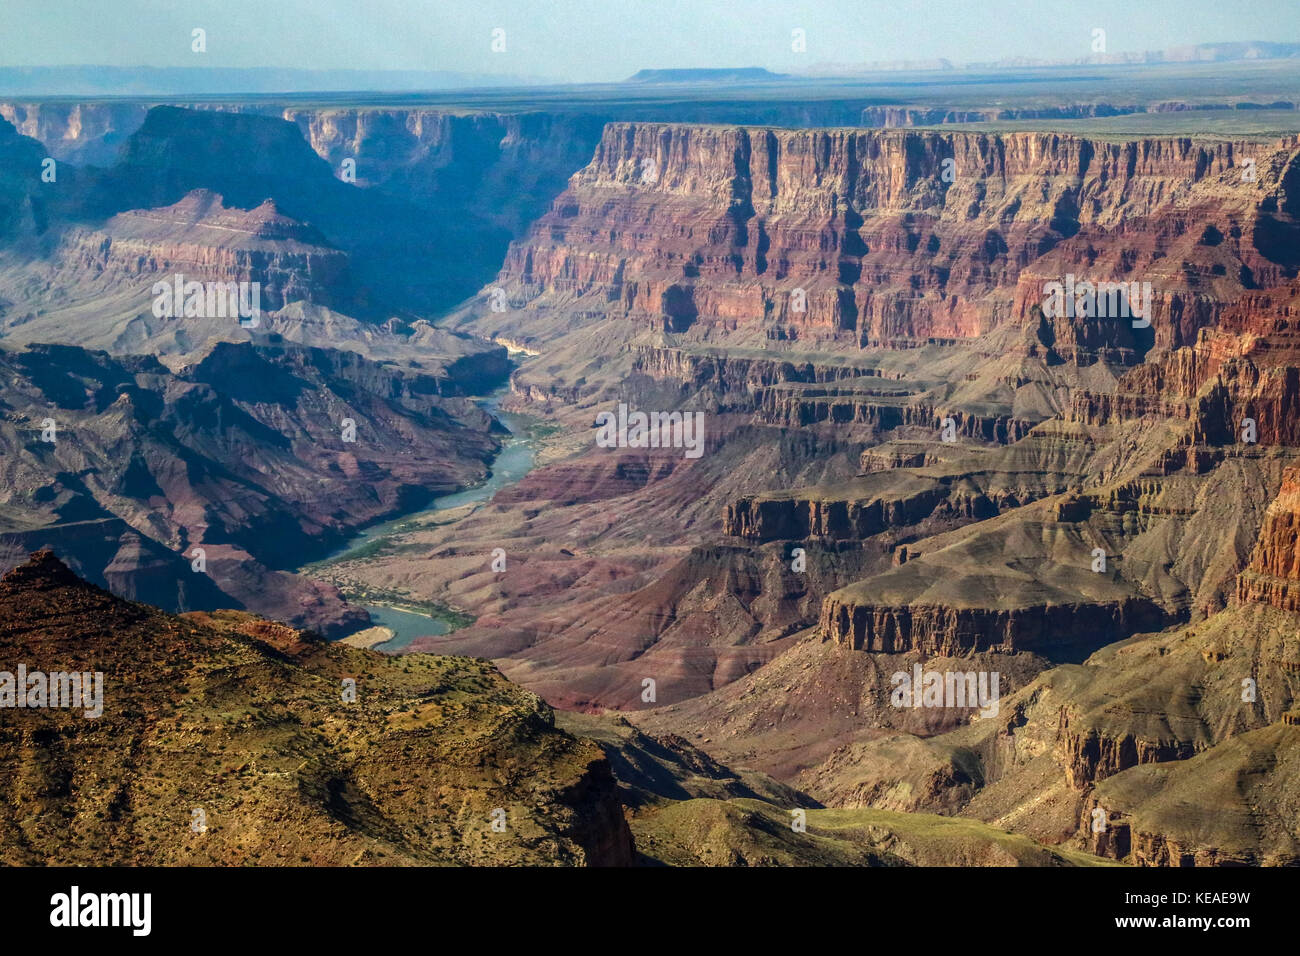 The Colorado River can be seen in this view taken from the south rim of the Grand Canyon - Stock Image